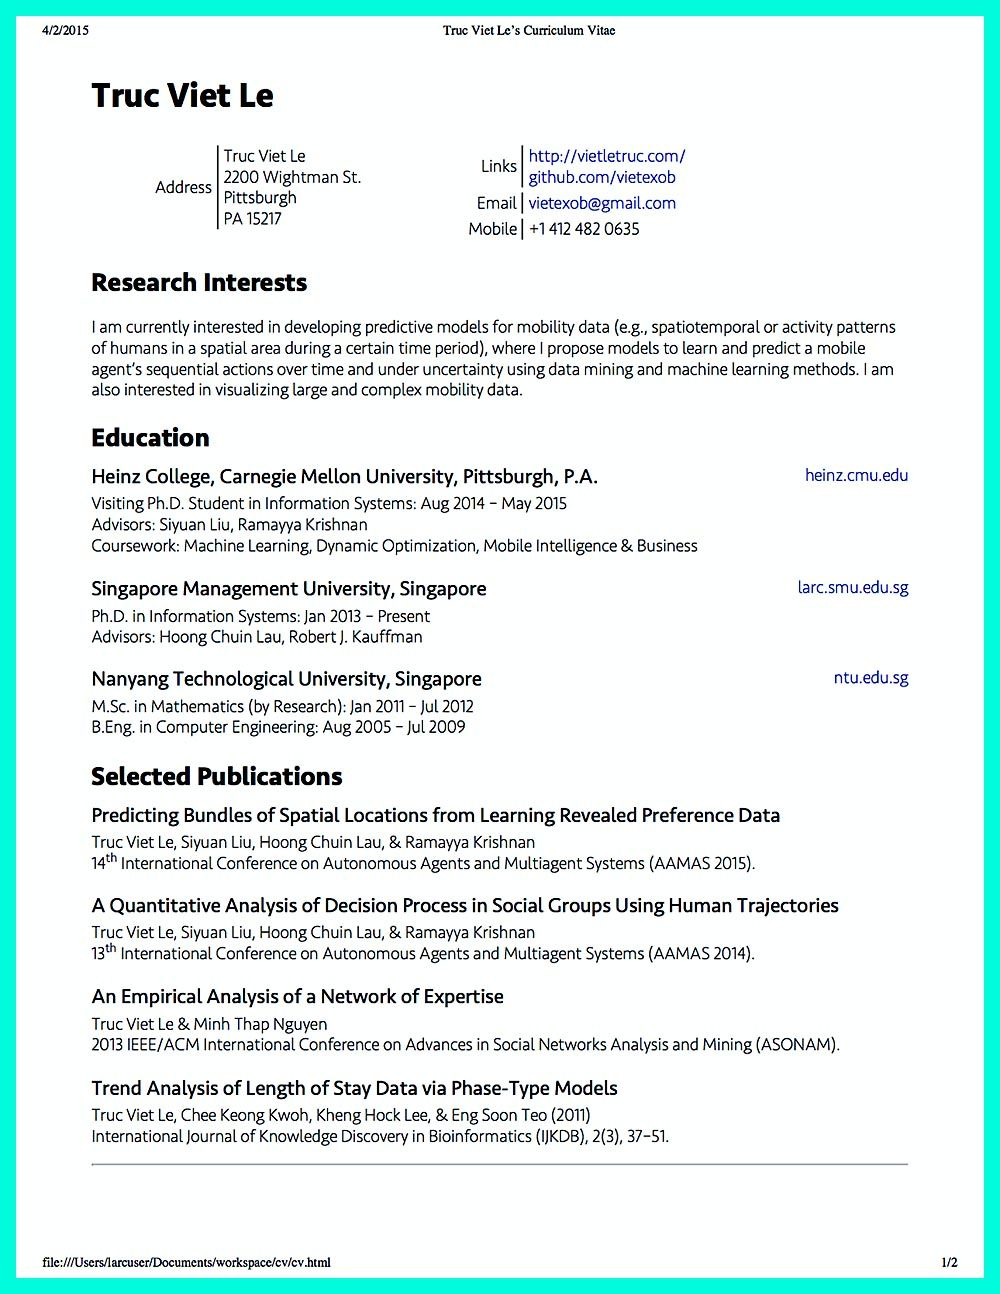 Data scientist resume include everything about your education, skill ...